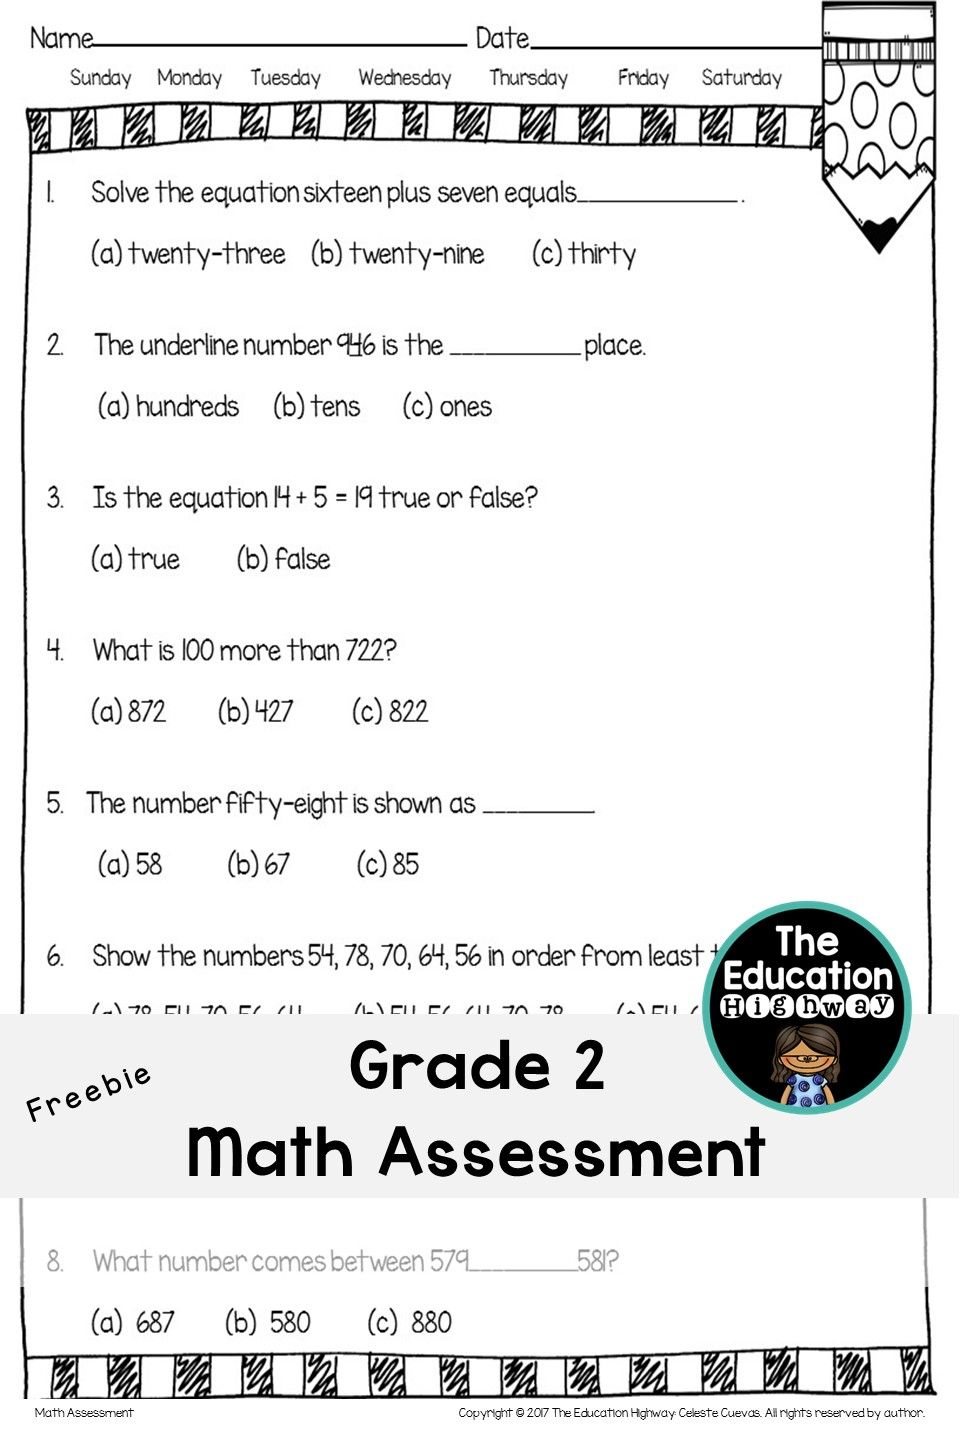 Math Assessment For Grade 2 Freebie 24 Multiple Choice Questions The Education Highway Math Assessment Education Quotes Math Multiple choice questions on addition